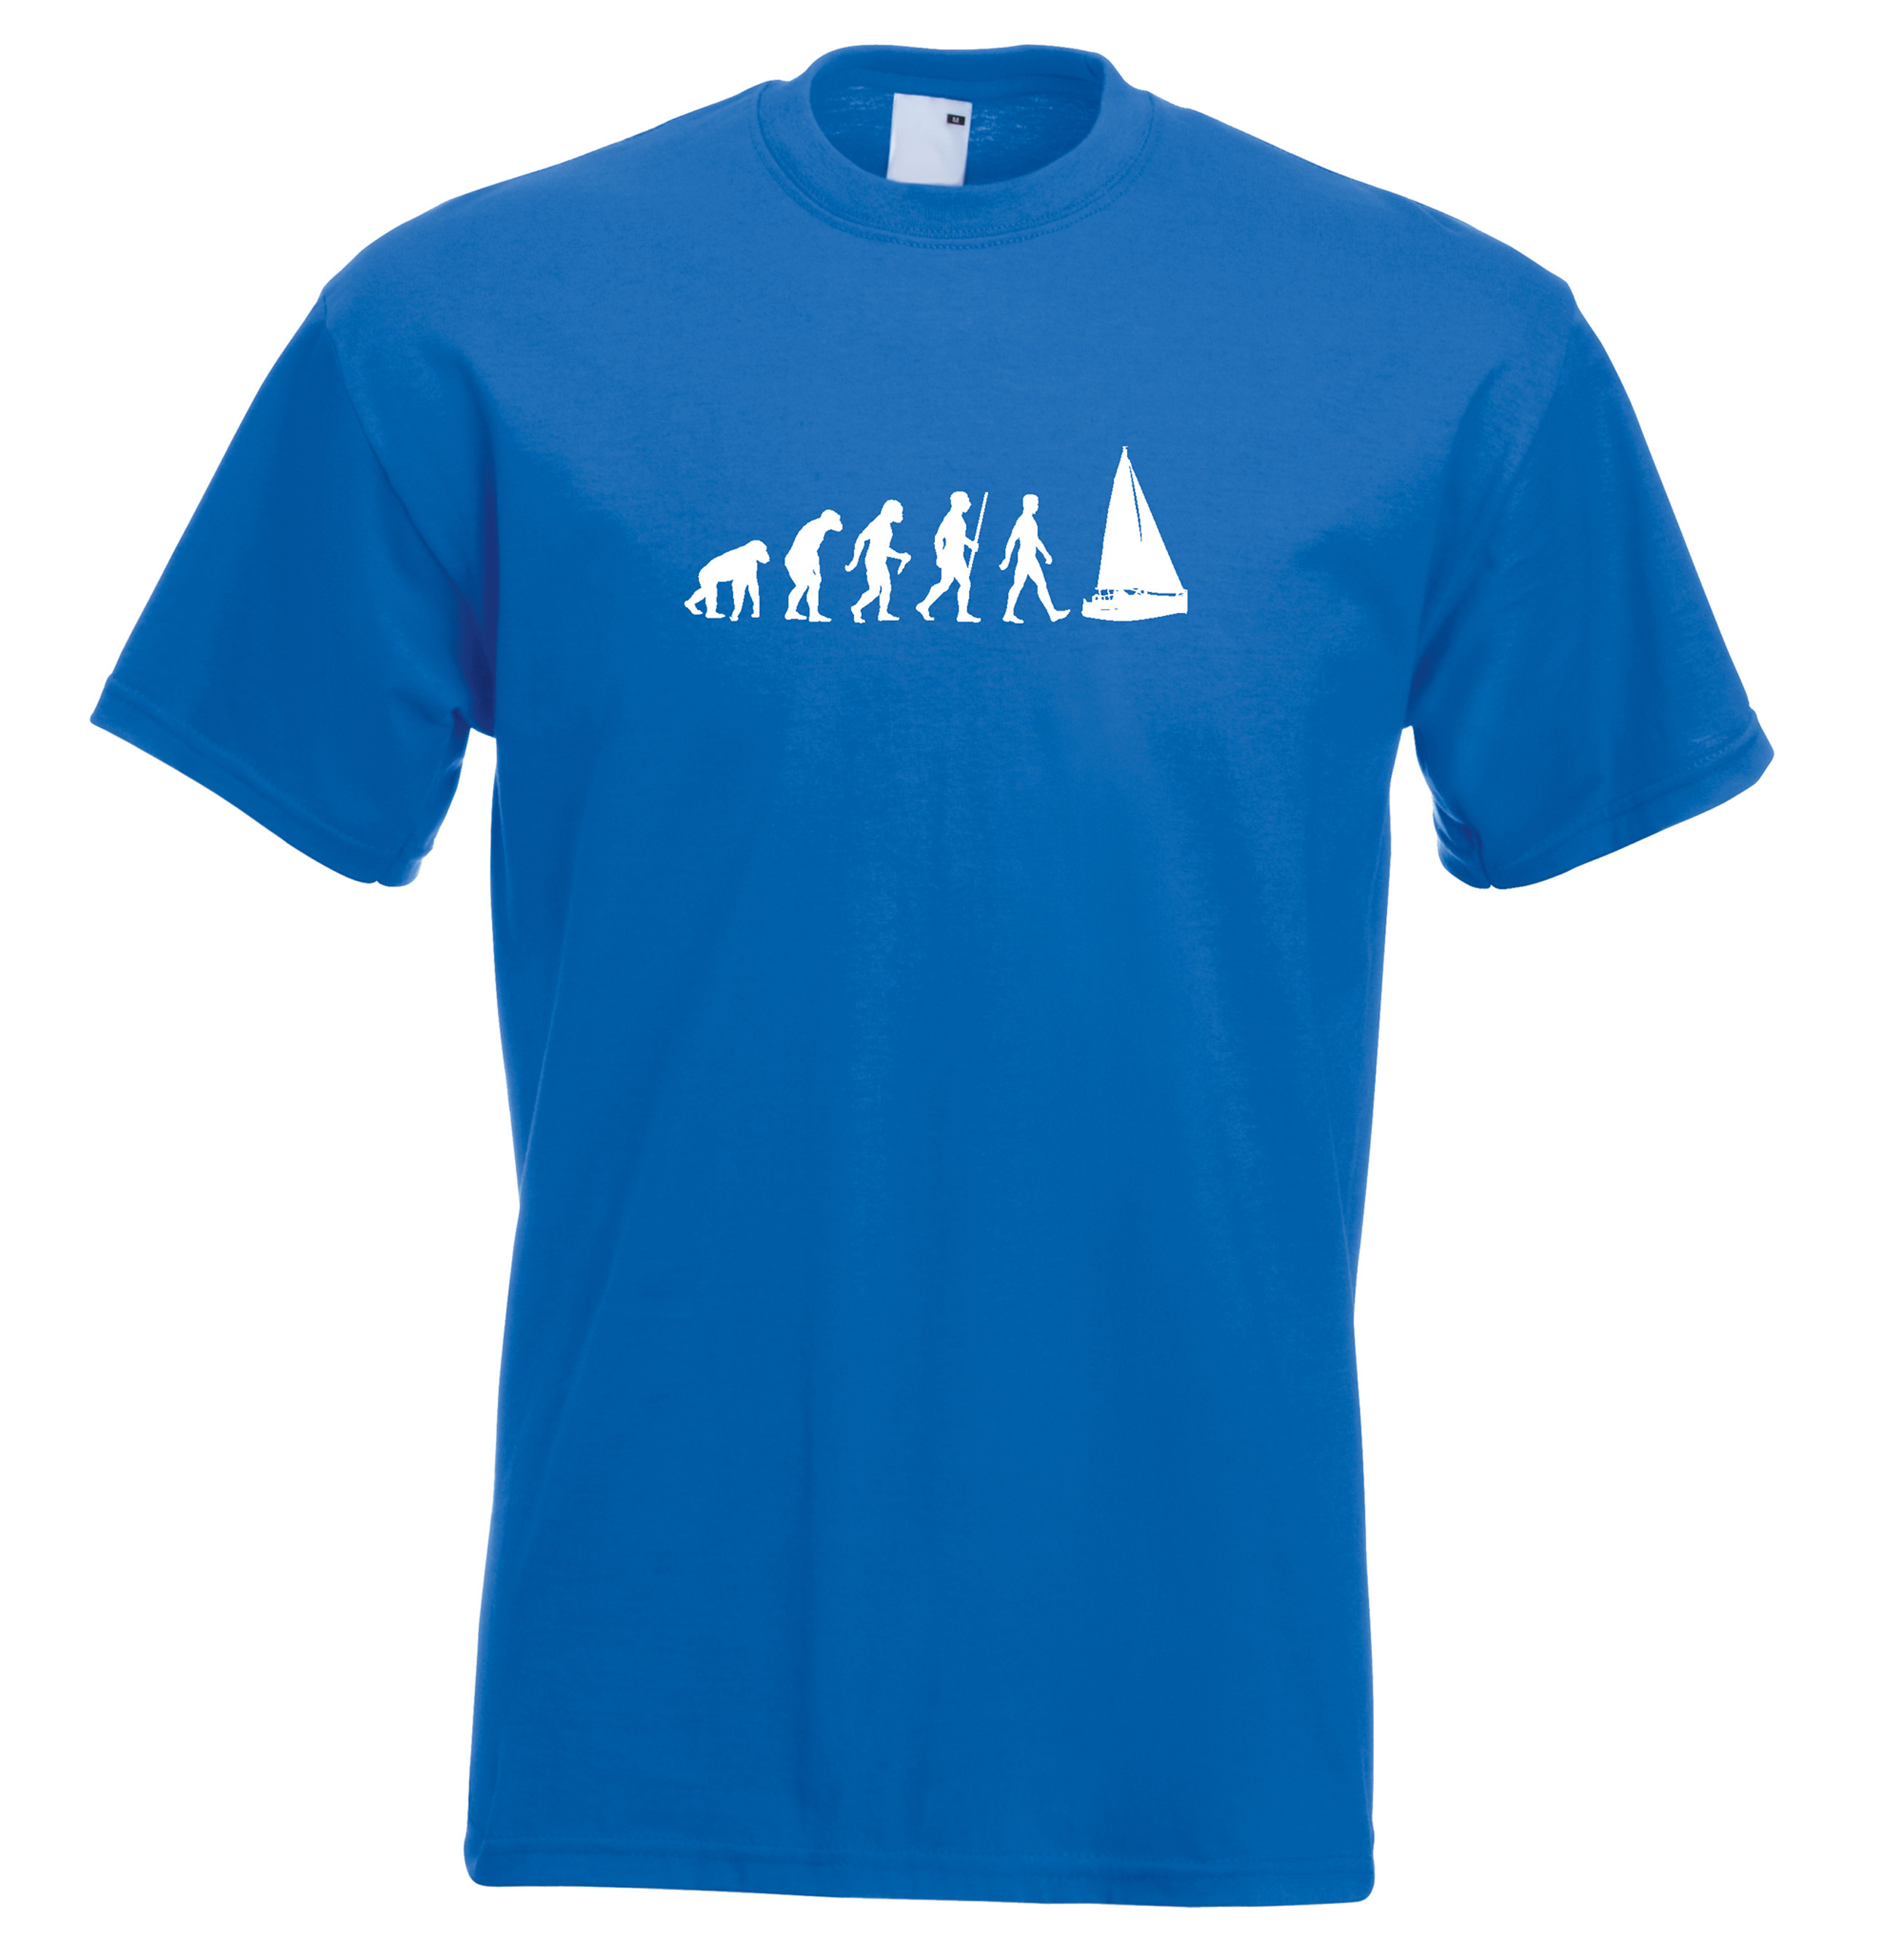 Juko Kids Sailing T Shirt Children/'s Sail Boat Evolution Yacht Top